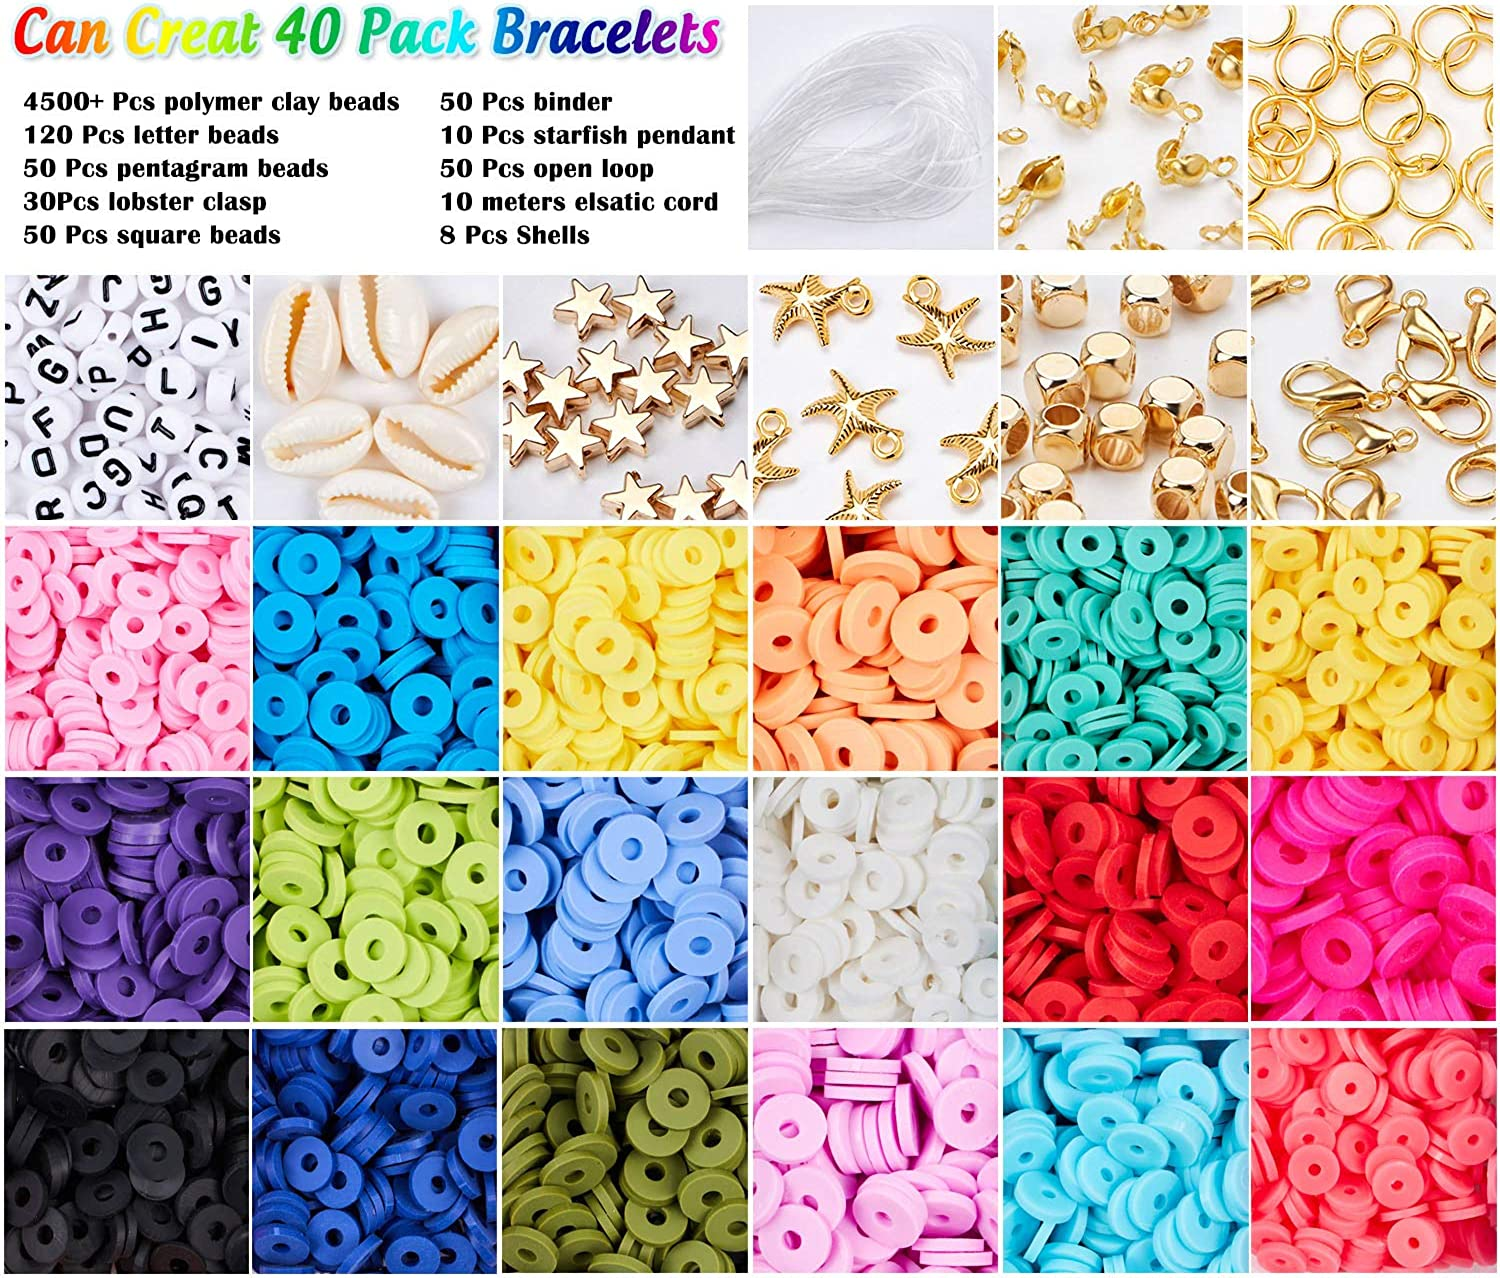 8 Colors, 6mm Beads EuTengHao 5755Pcs Flat Round Polymer Clay Spacer Beads,Ceramic Beads,African Disc Beads for Jewelry Making Bracelets Necklace Earring DIY Craft Kit with Pendant and Jump Rings